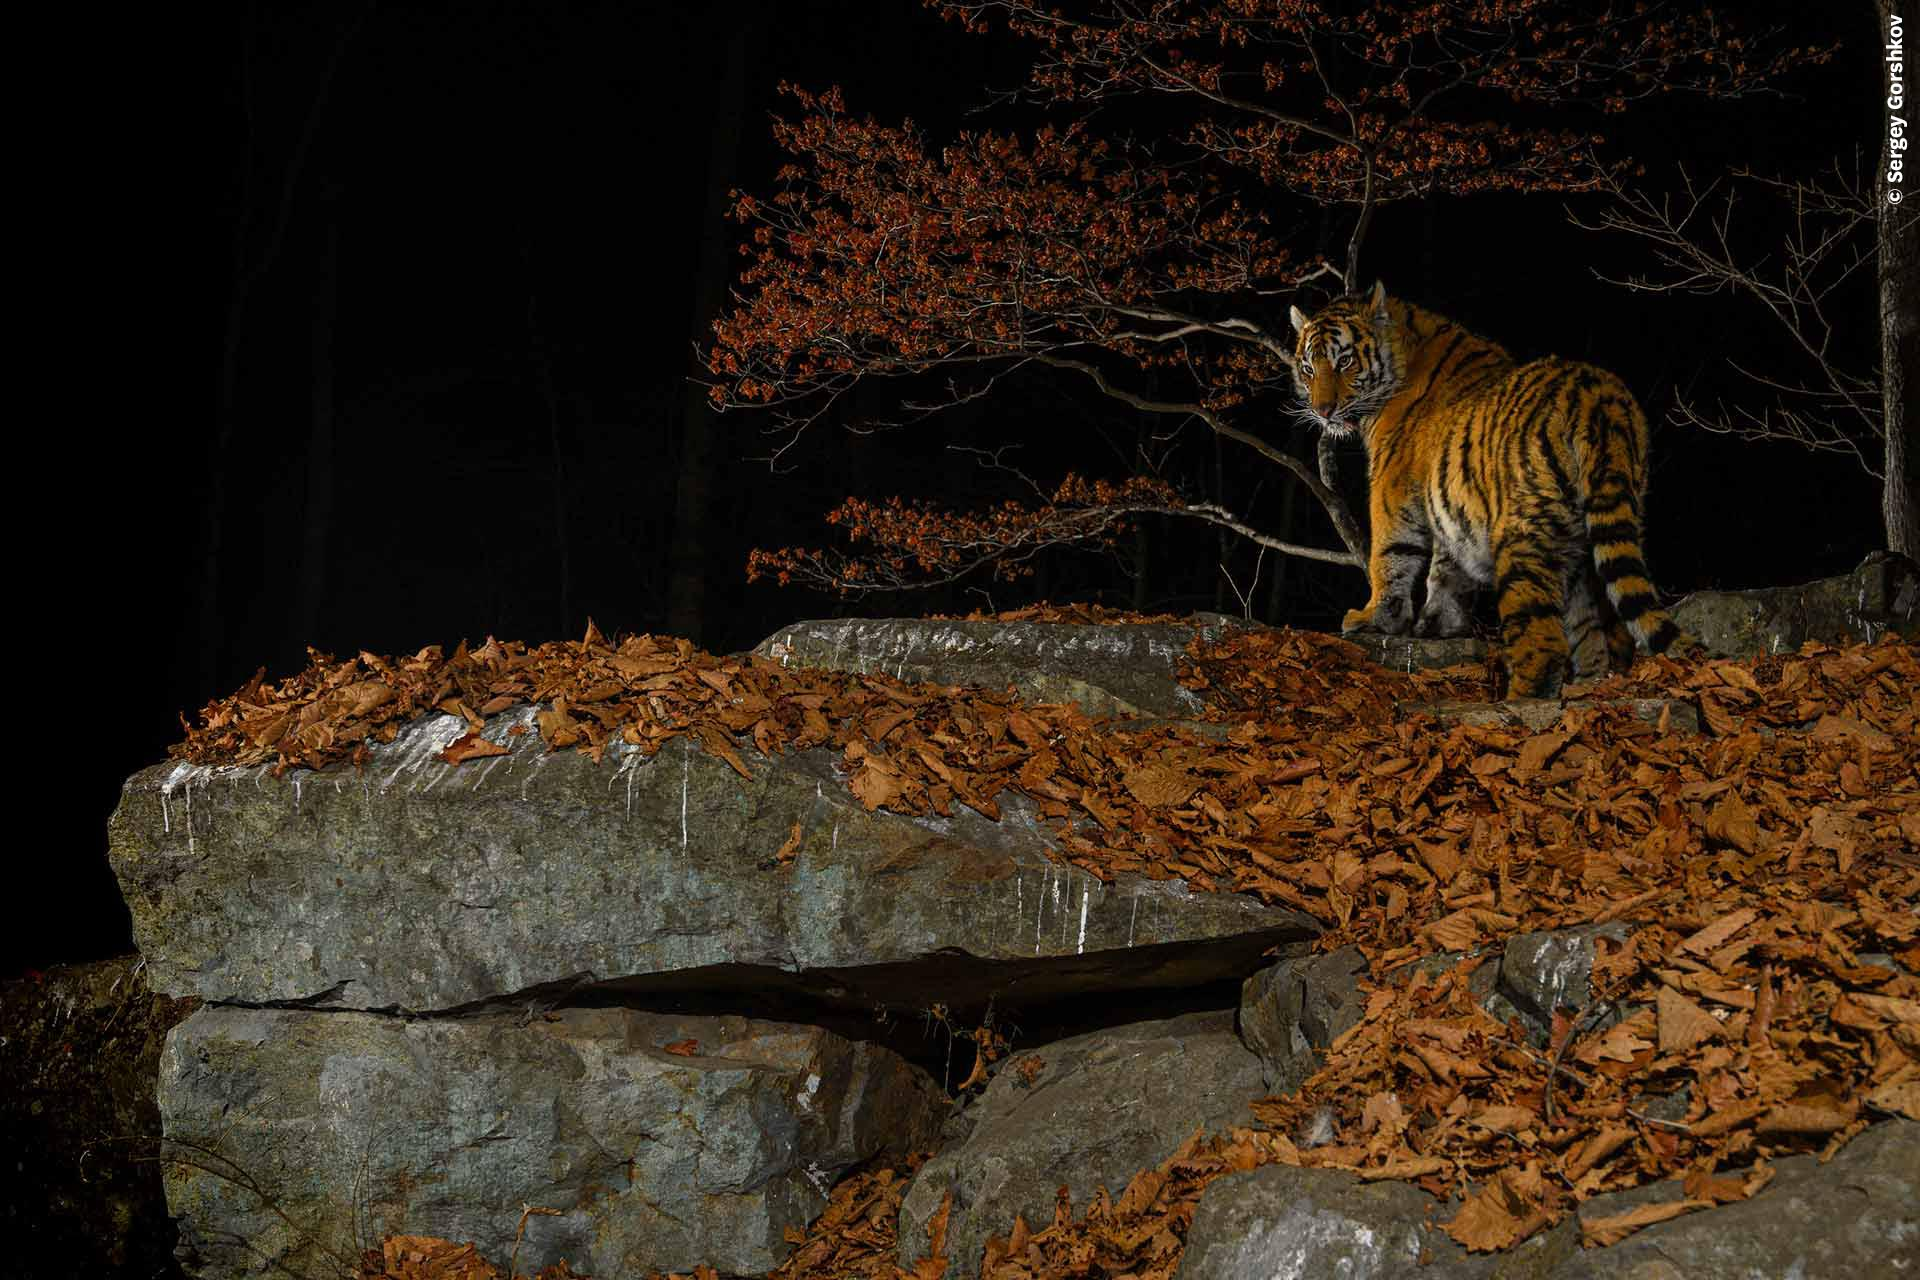 A tiger on a clifftop at night